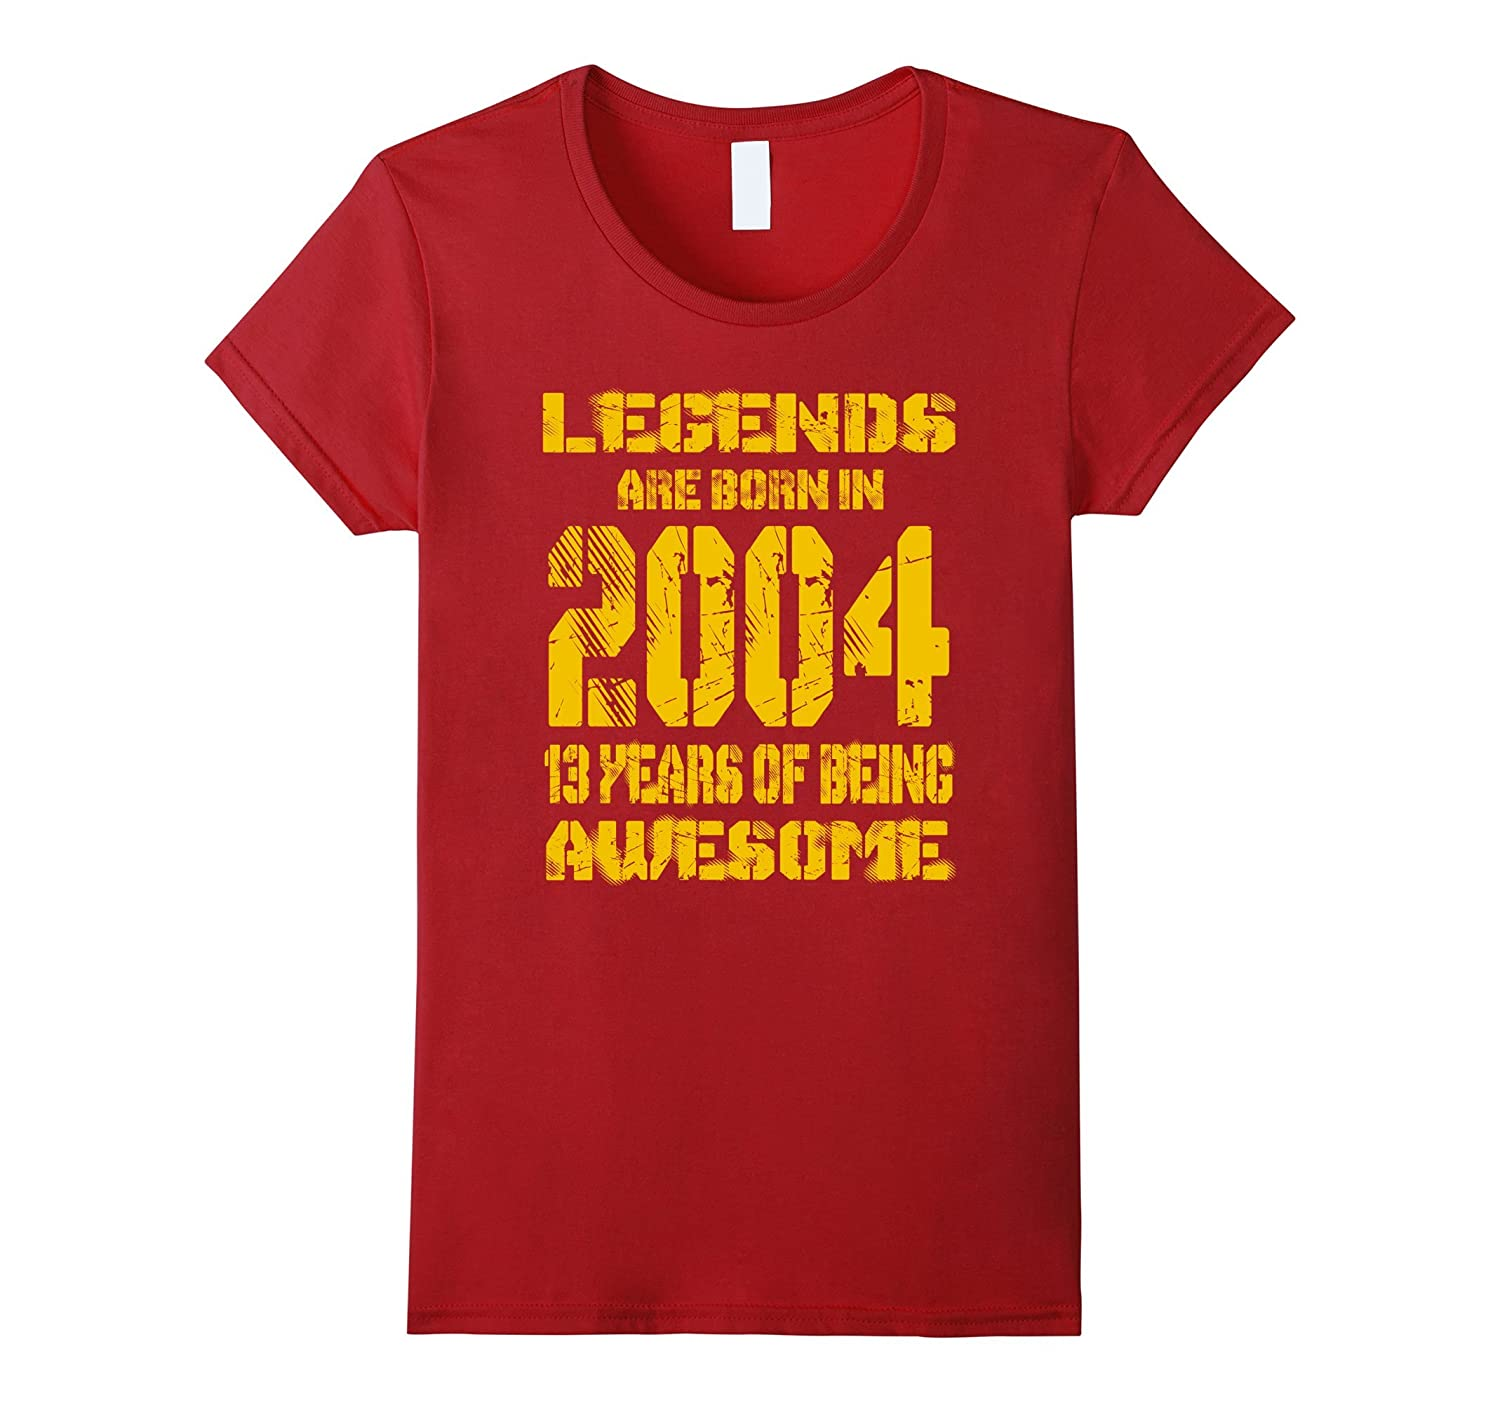 13 years old 13th Birthday B-day Gift Legends 2004 T Shirt